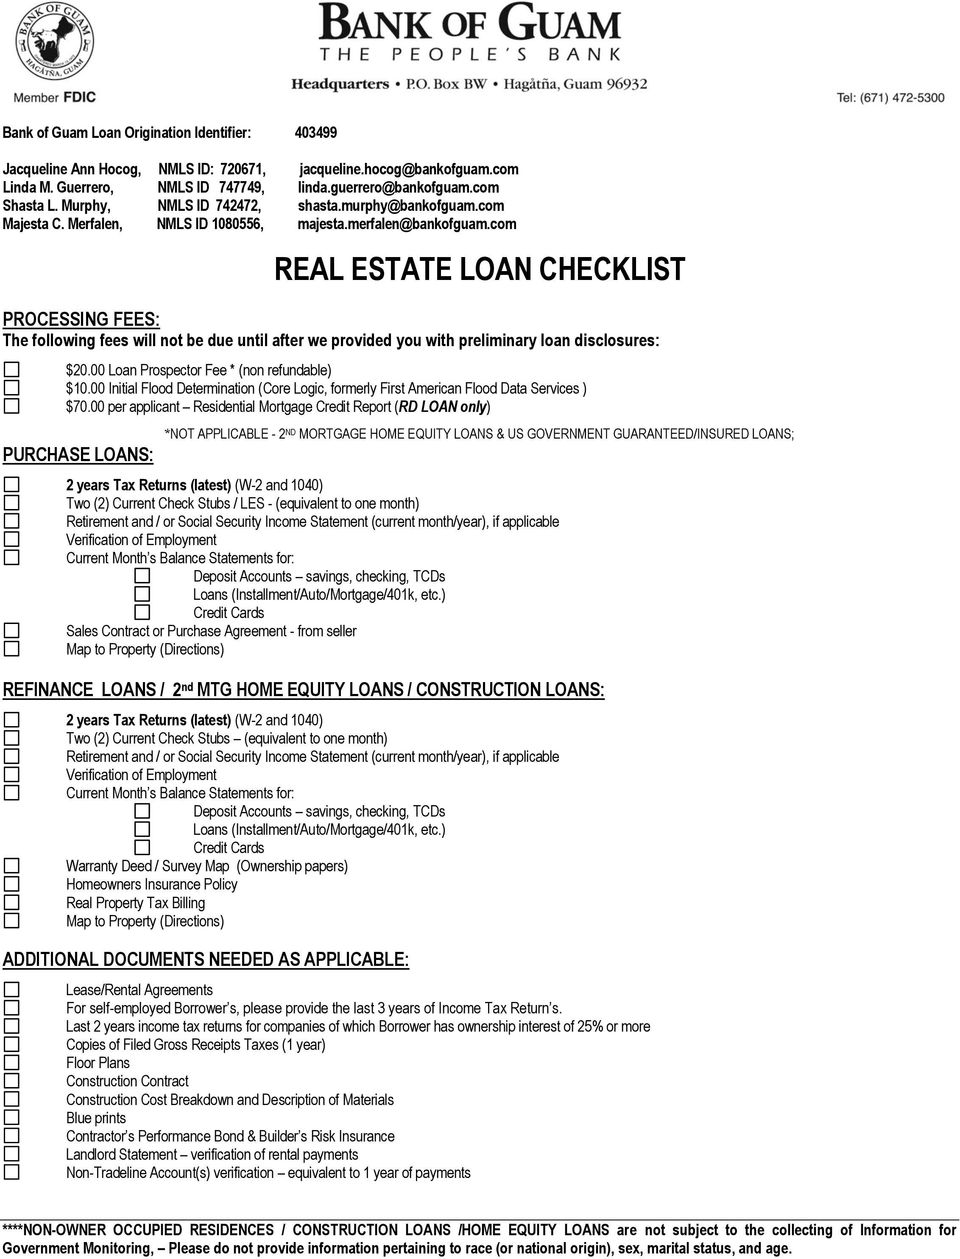 com REAL ESTATE LOAN CHECKLIST PROCESSING FEES: The following fees will not be due until after we provided you with preliminary loan disclosures: $20.00 Loan Prospector Fee * (non refundable) $10.